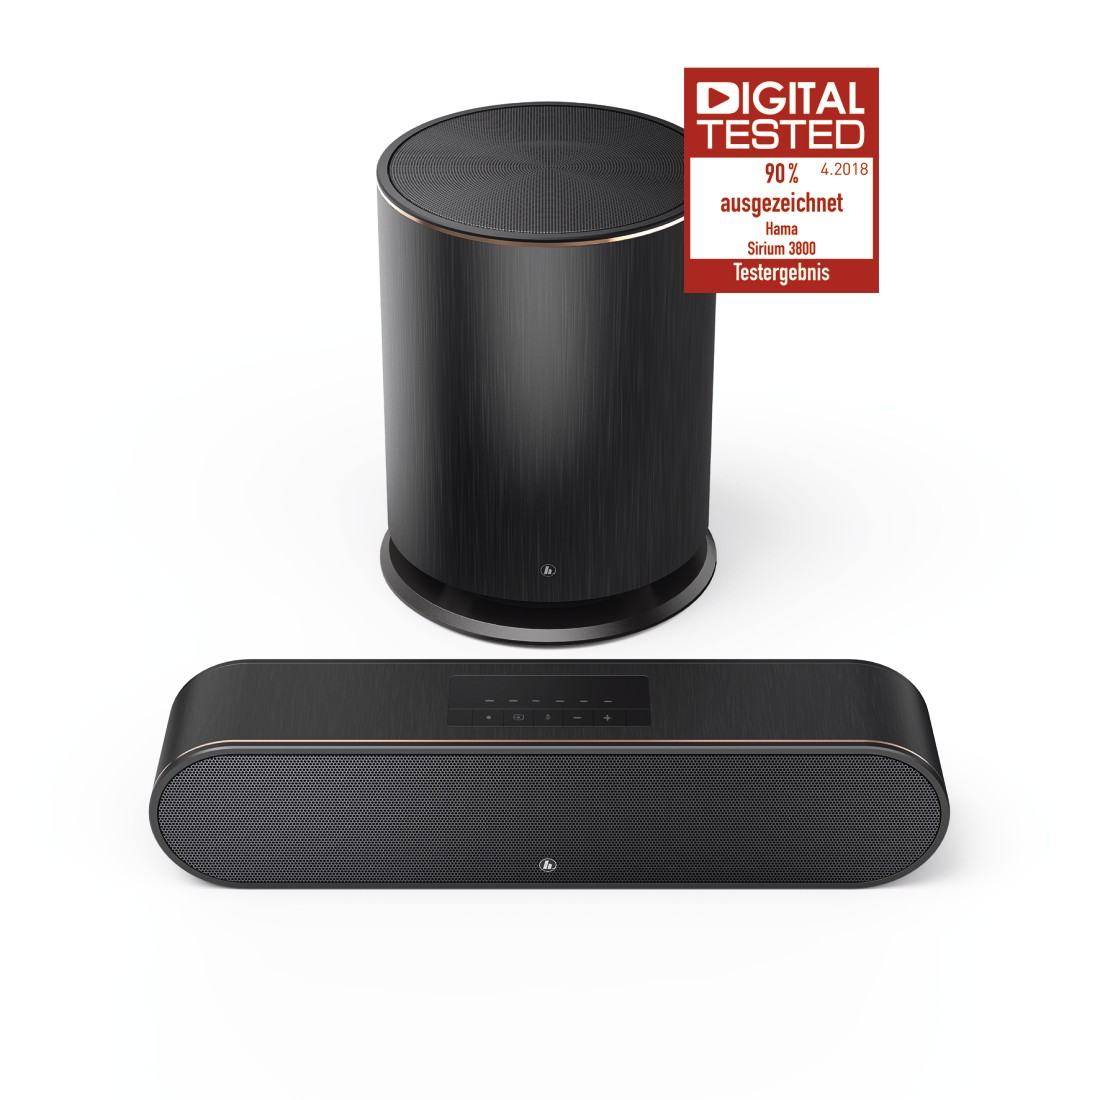 "uax Druckfähige Abbildung Logo - Hama, Smart-Slim-Soundbar 2.1 ""SIRIUM3800ABT"", Wireless Subwoofer/Alexa/Bluetooth"